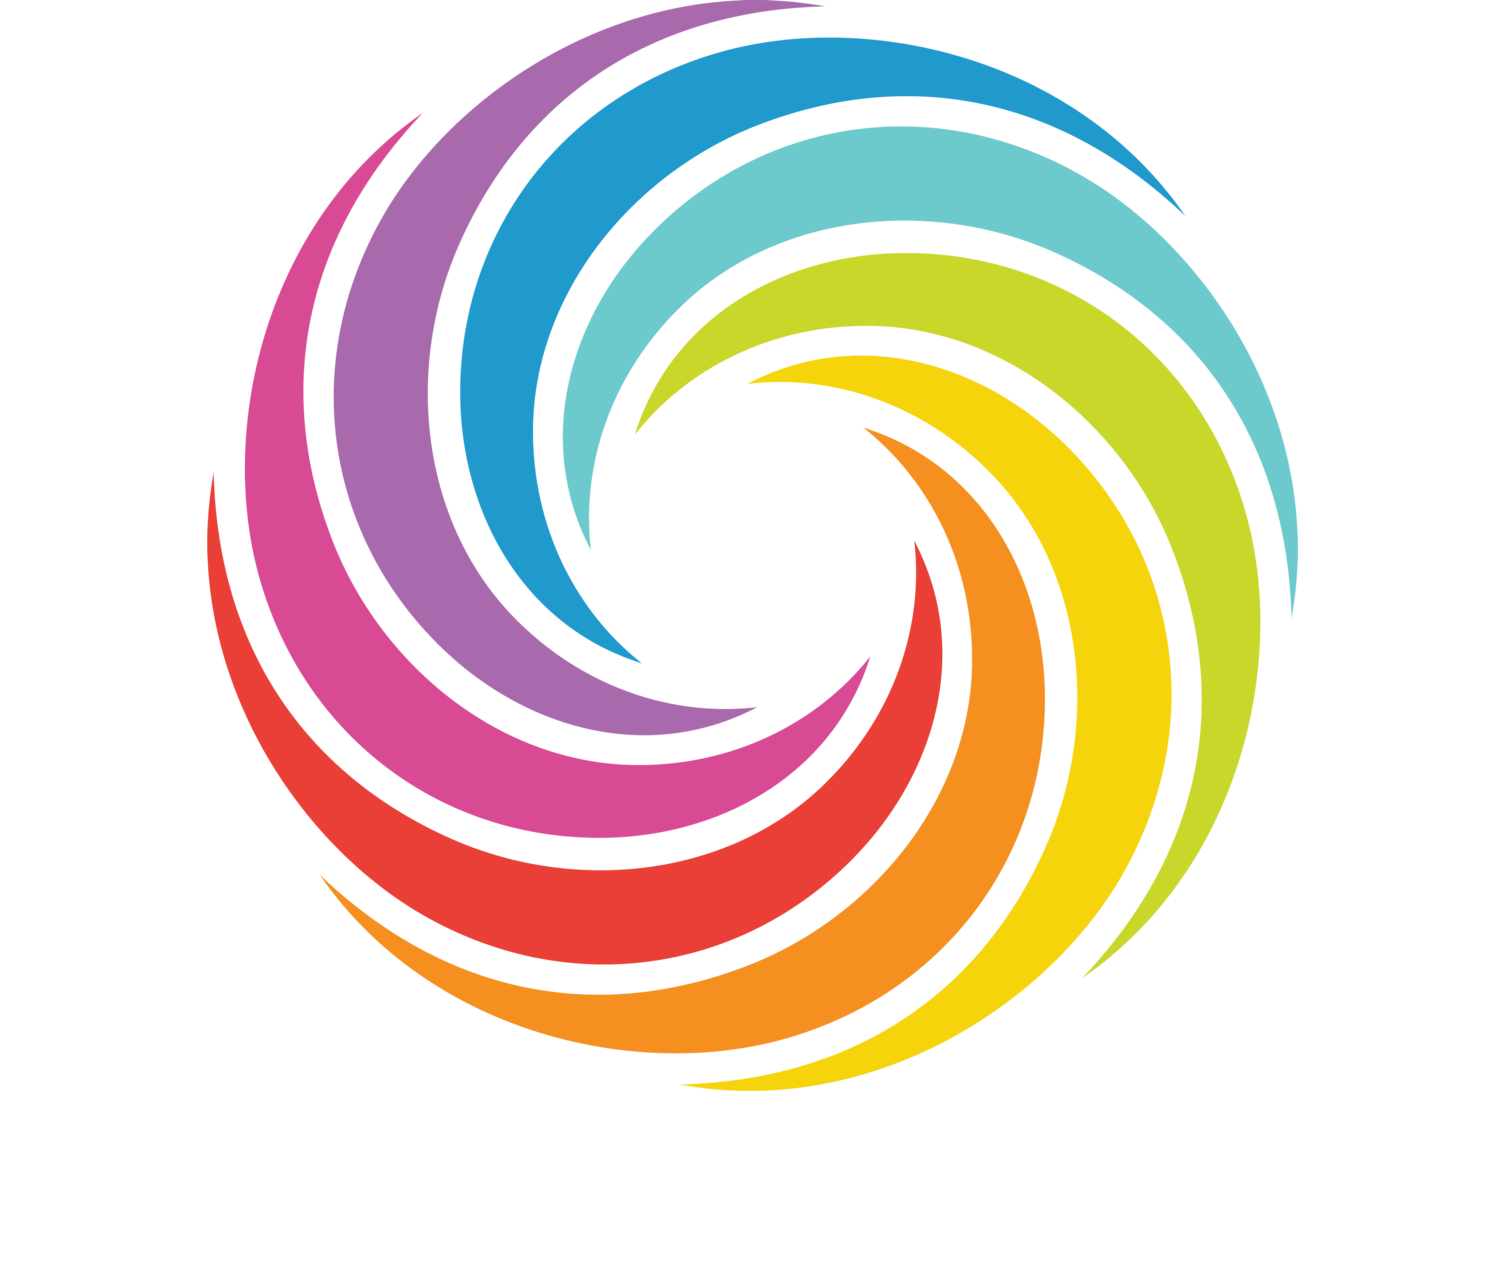 original rainbow bagels bagel art the bagel store brooklyn. Black Bedroom Furniture Sets. Home Design Ideas